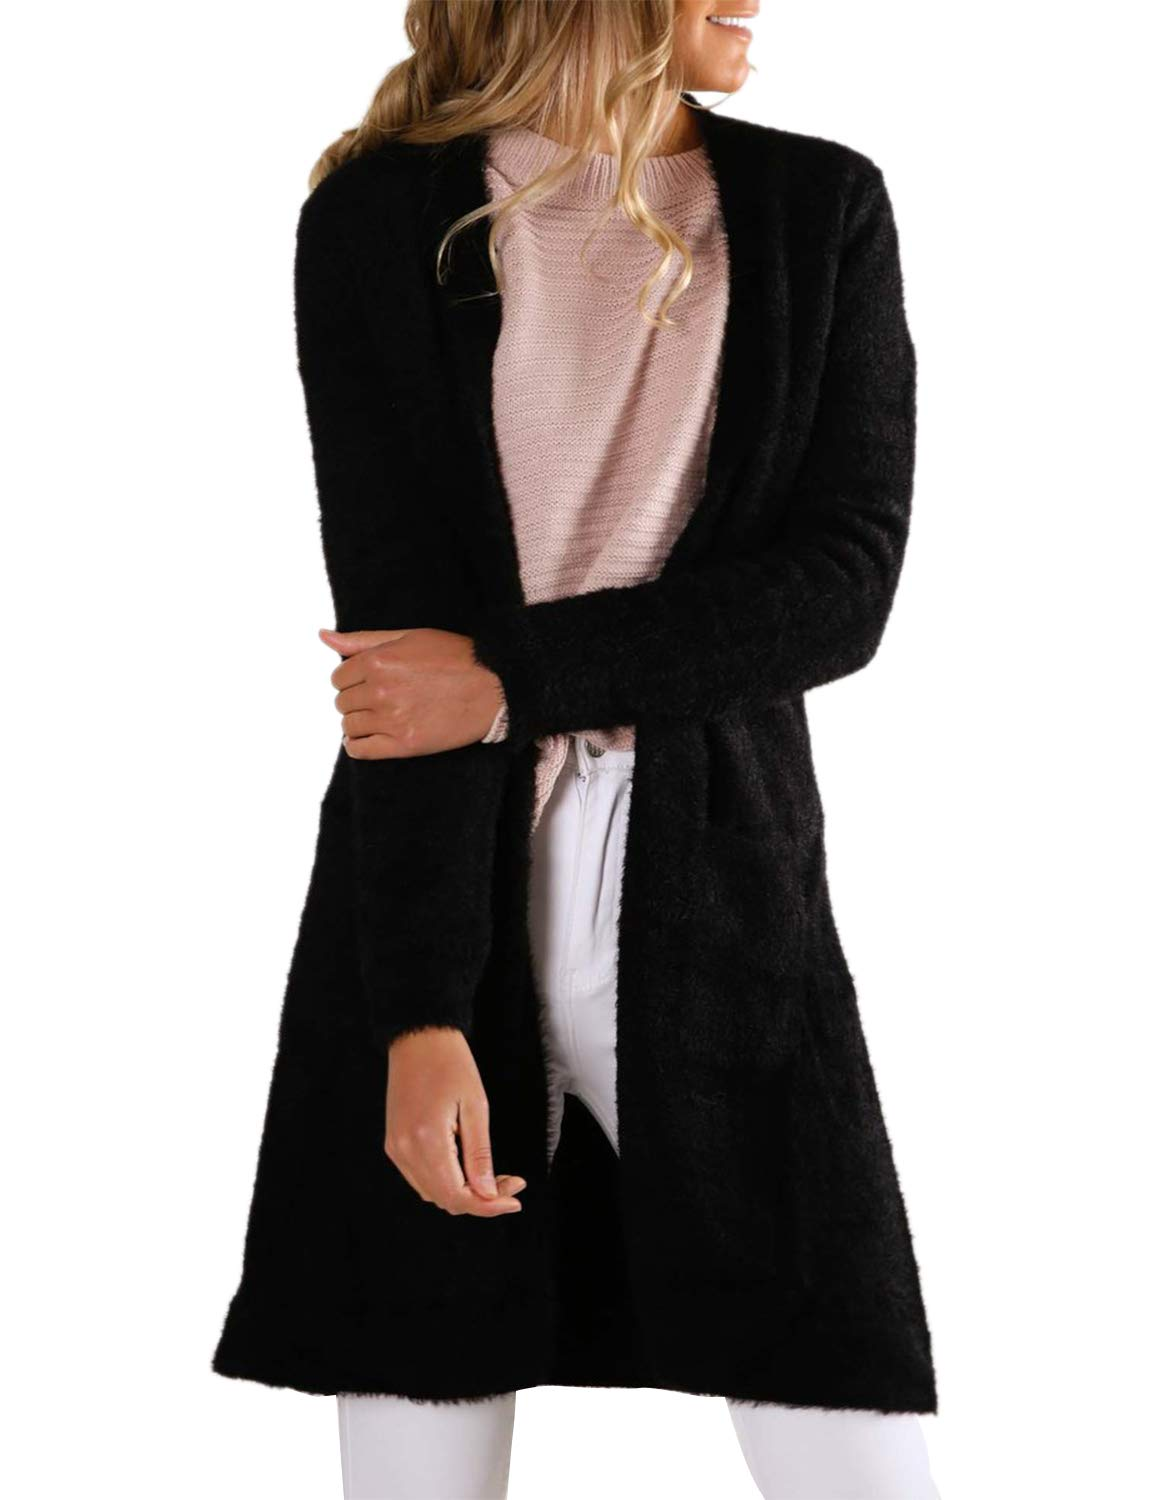 BMJL Women's Long Sleeve Coat Warm Sweater Pocket Knit Fuzzy Cardigans Black